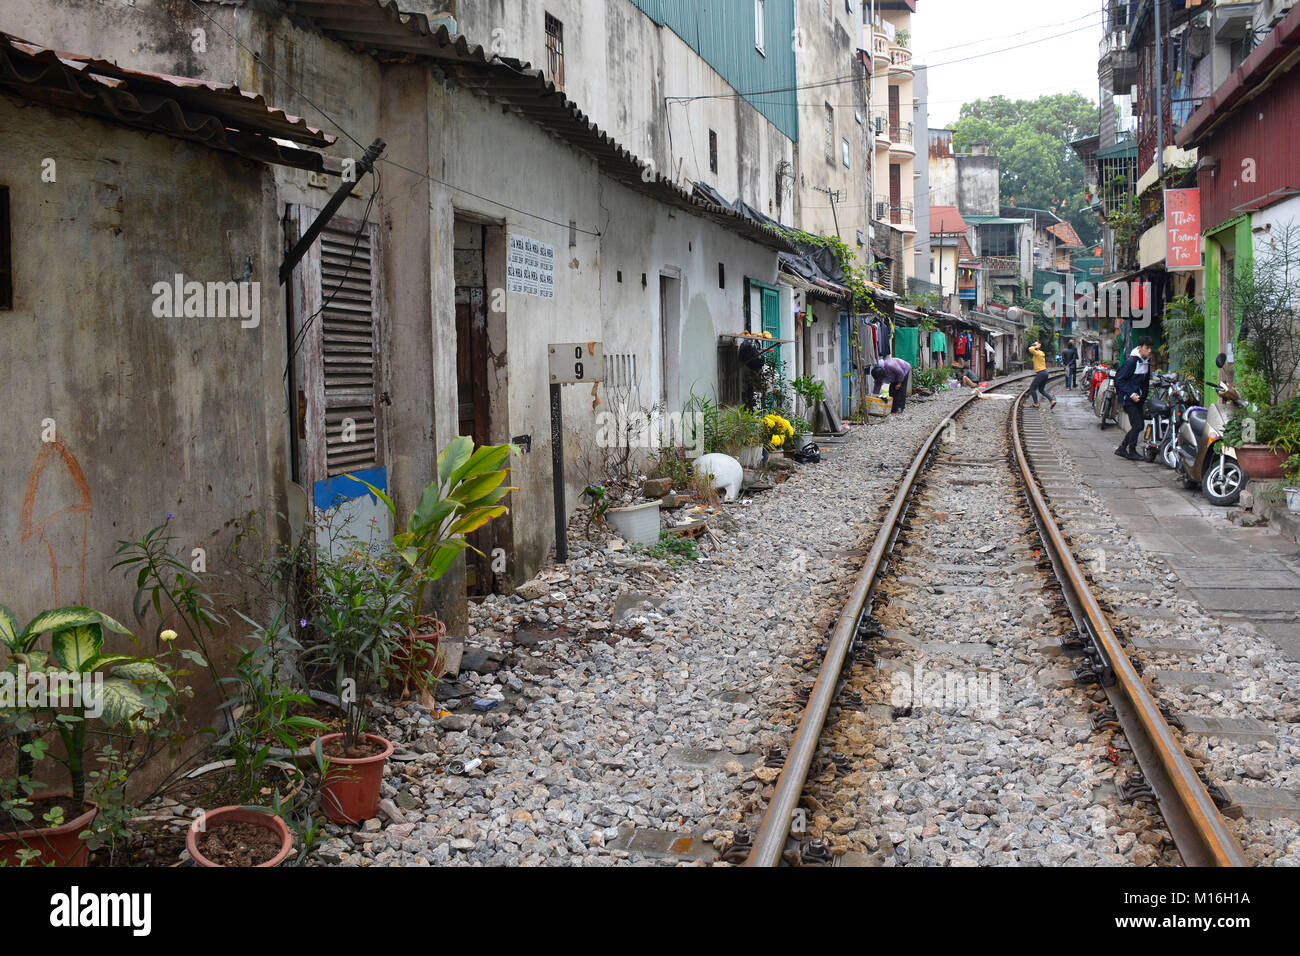 Hanoi, Vietnam - 14th December 2017. Houses on a residential street which is often referred to as Train Street in Stock Photo